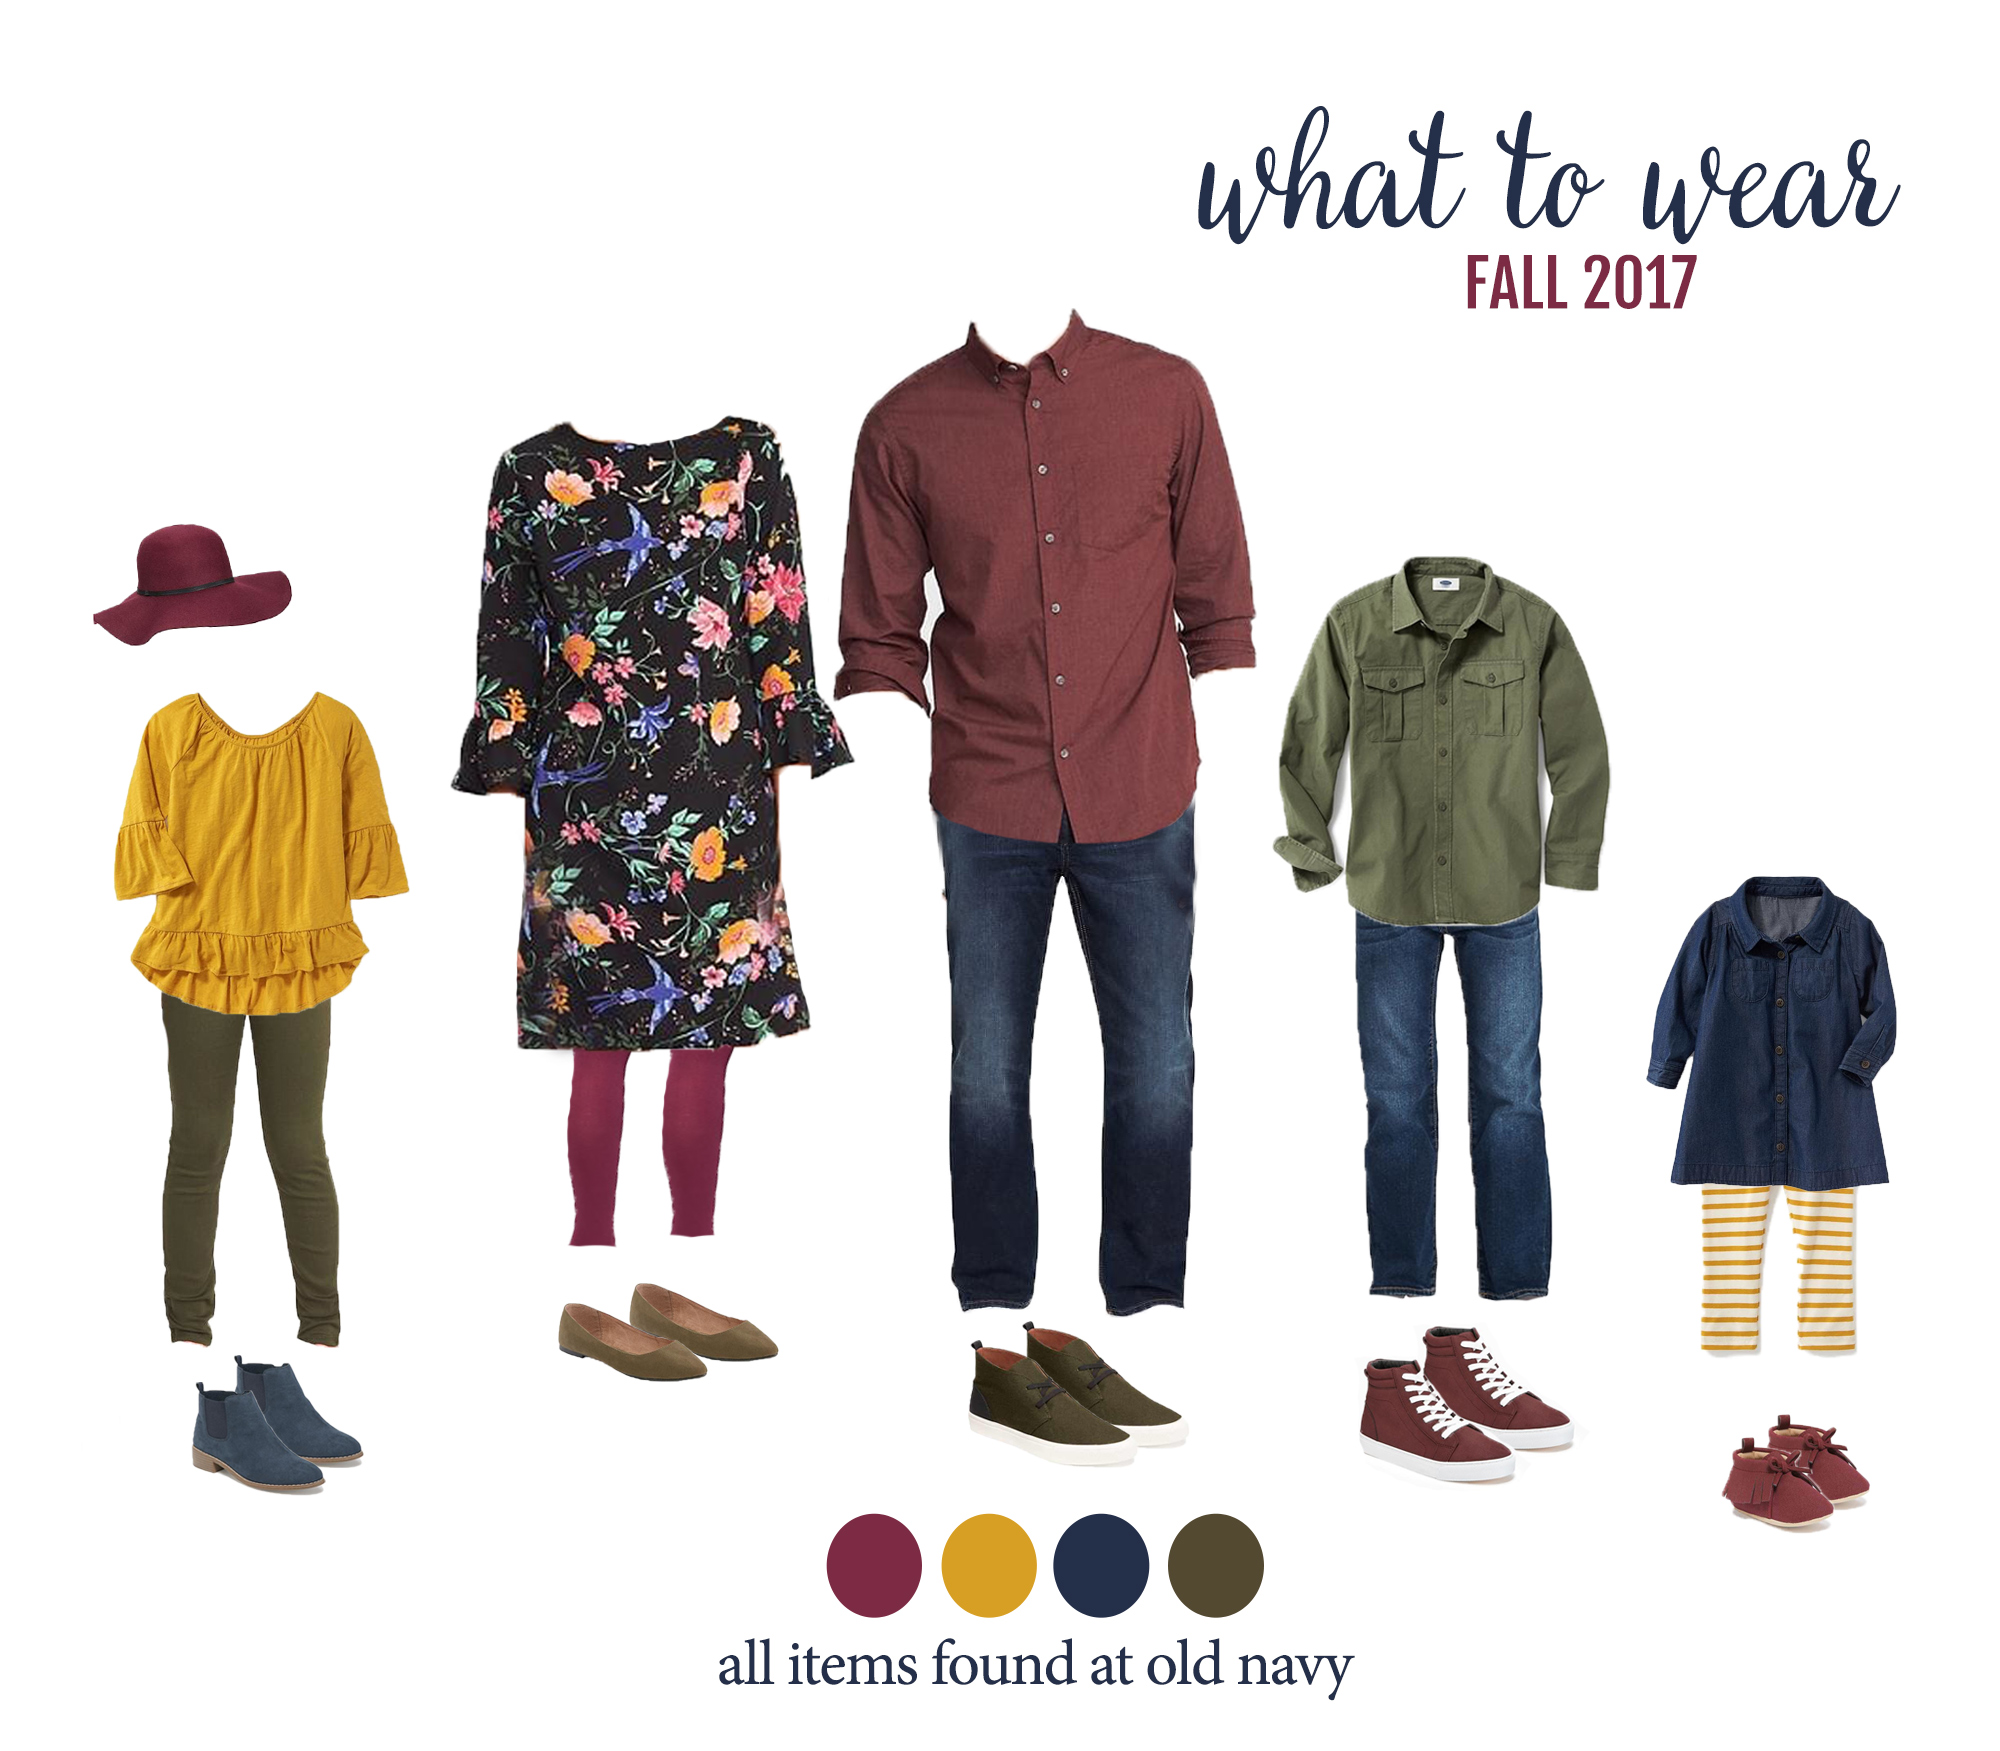 Wear to what for fall family photos foto